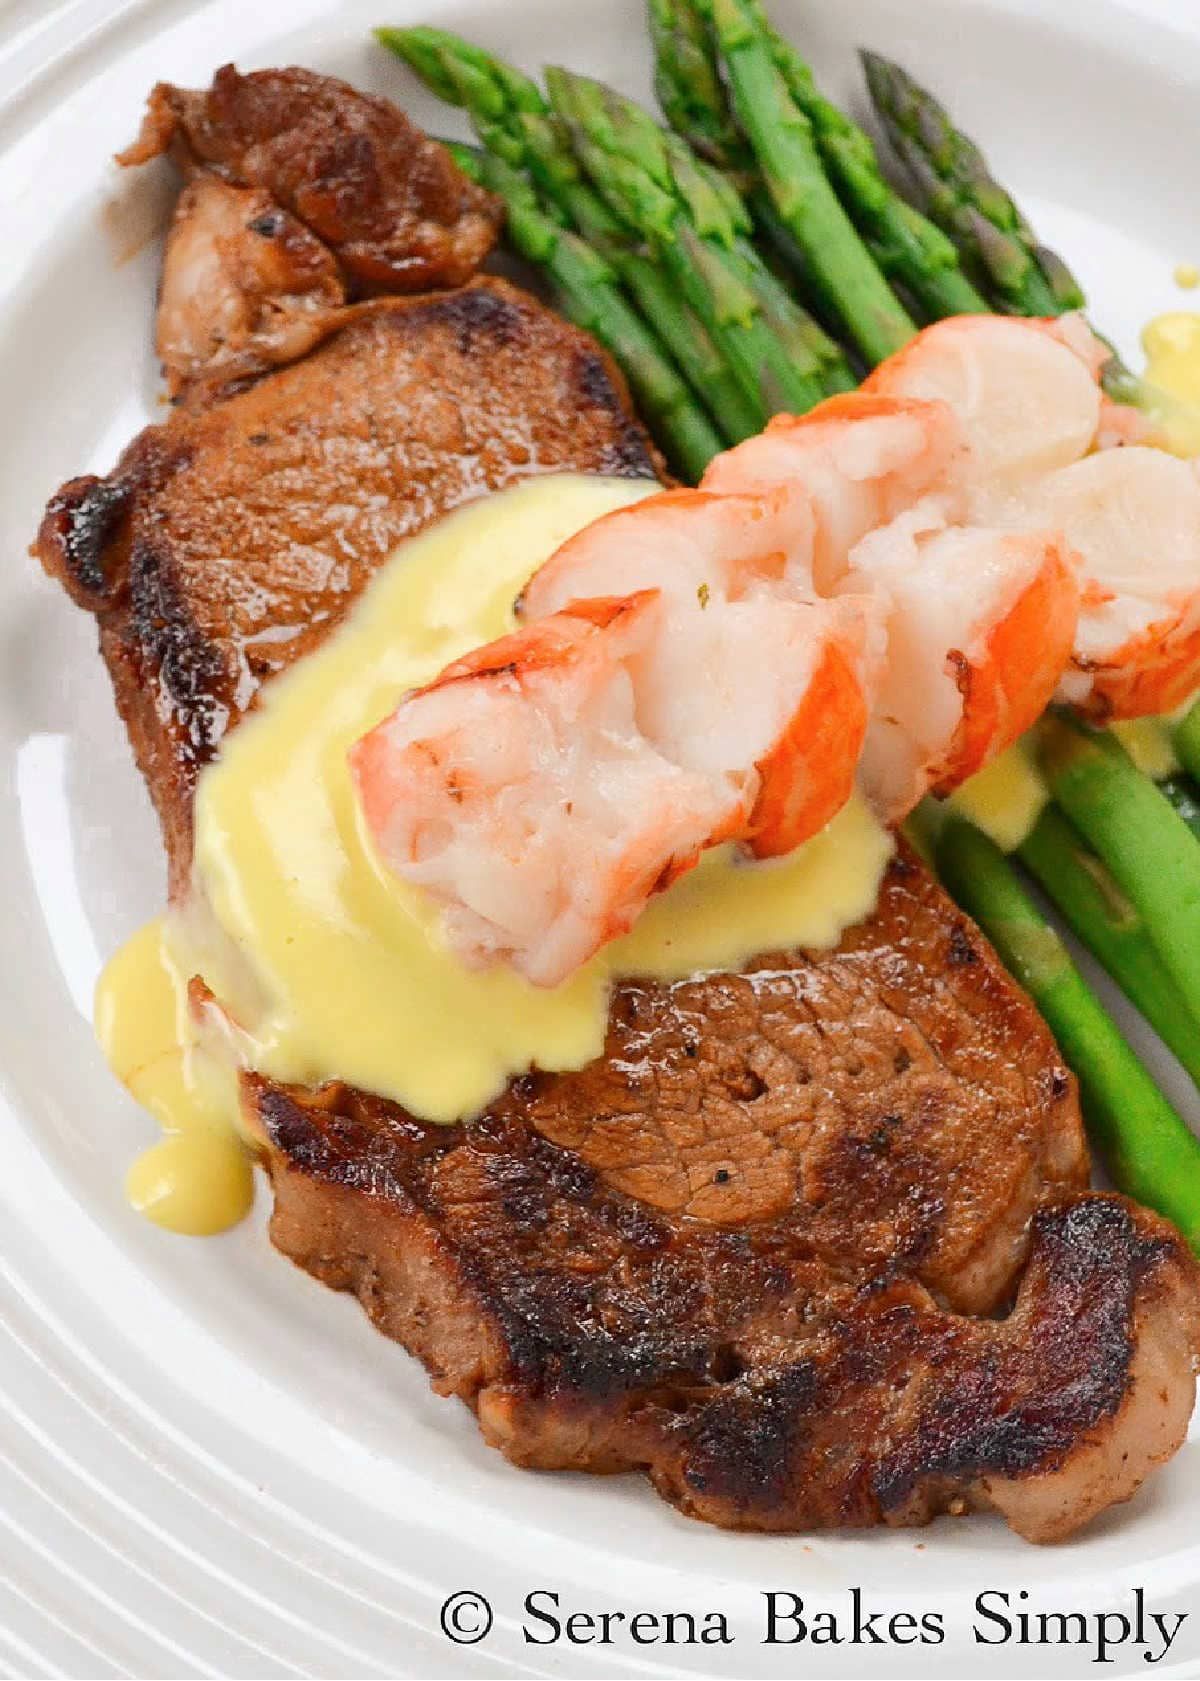 Pan Seared Steak on a white plate covered with Hollandaise Sauce and Sliced Lobster Tail with Asparagus on the side for Fathers Day.